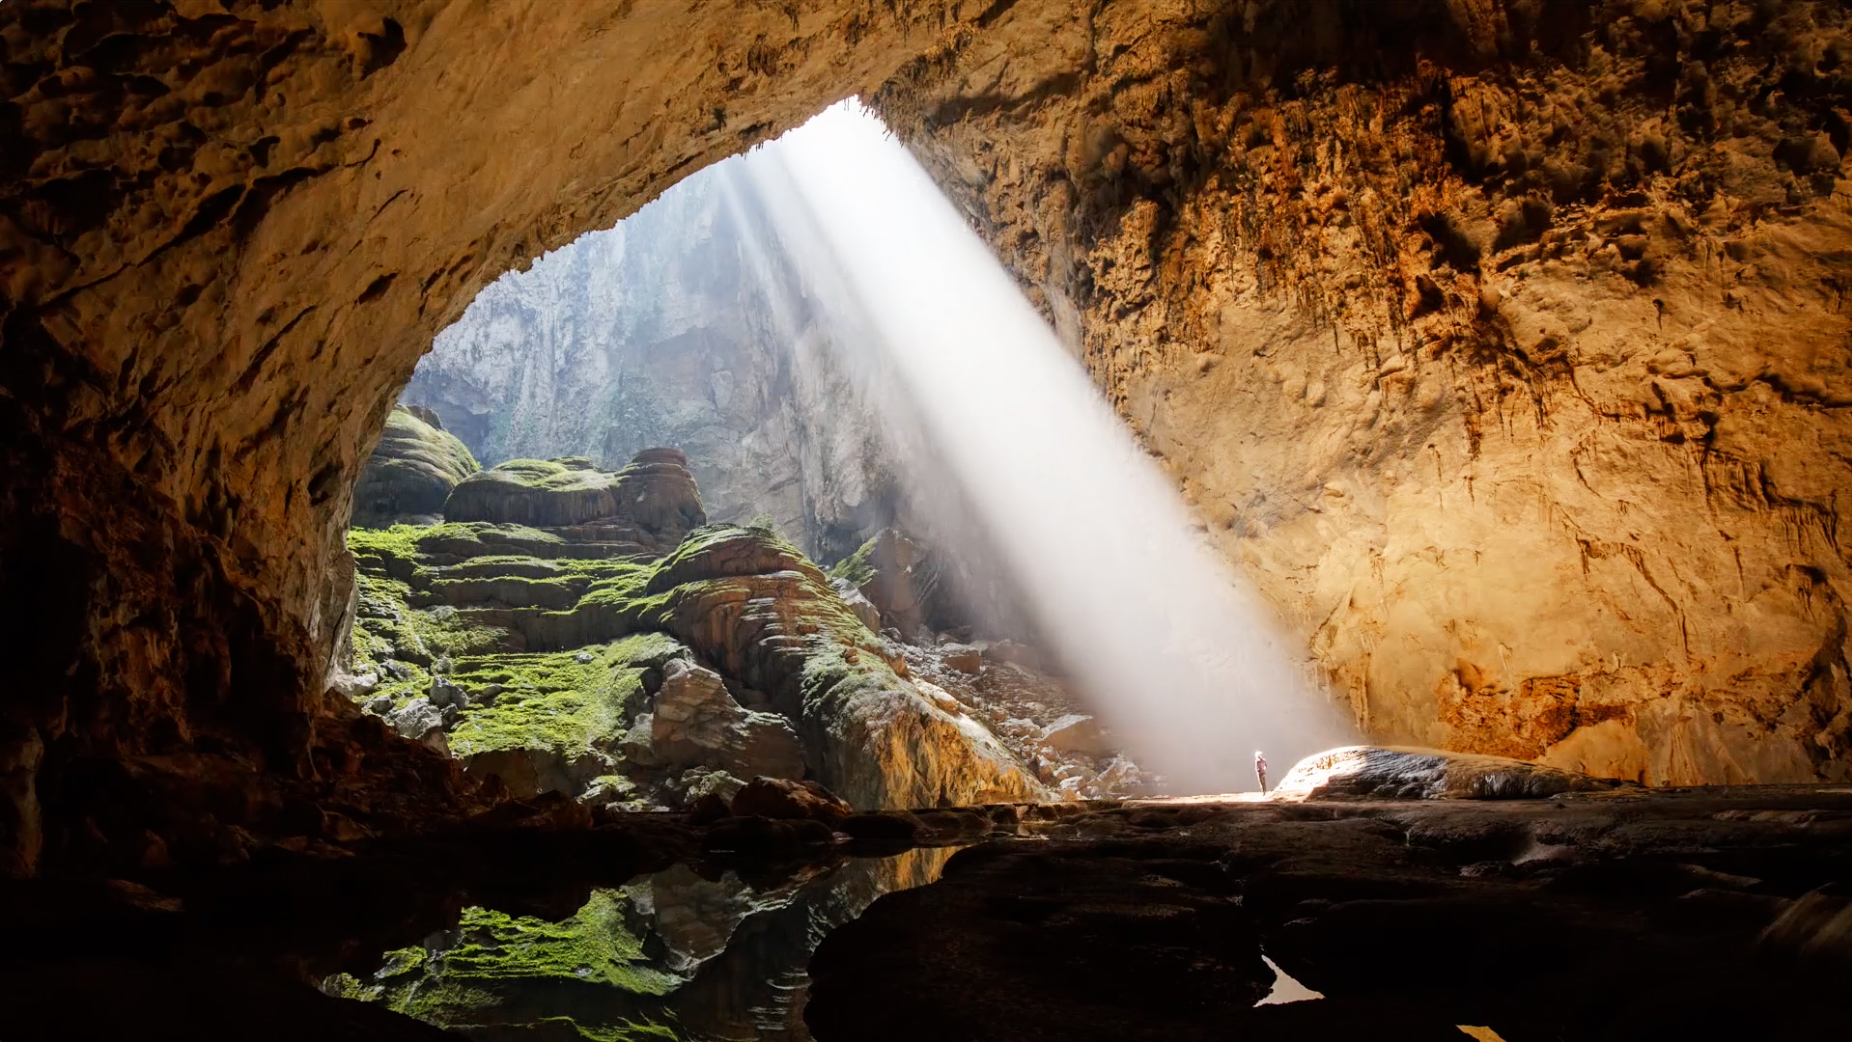 Son Doong Cave Tour DN Phong Nha Ke Bang Daily Tours - 12 amazing caves you have to visit